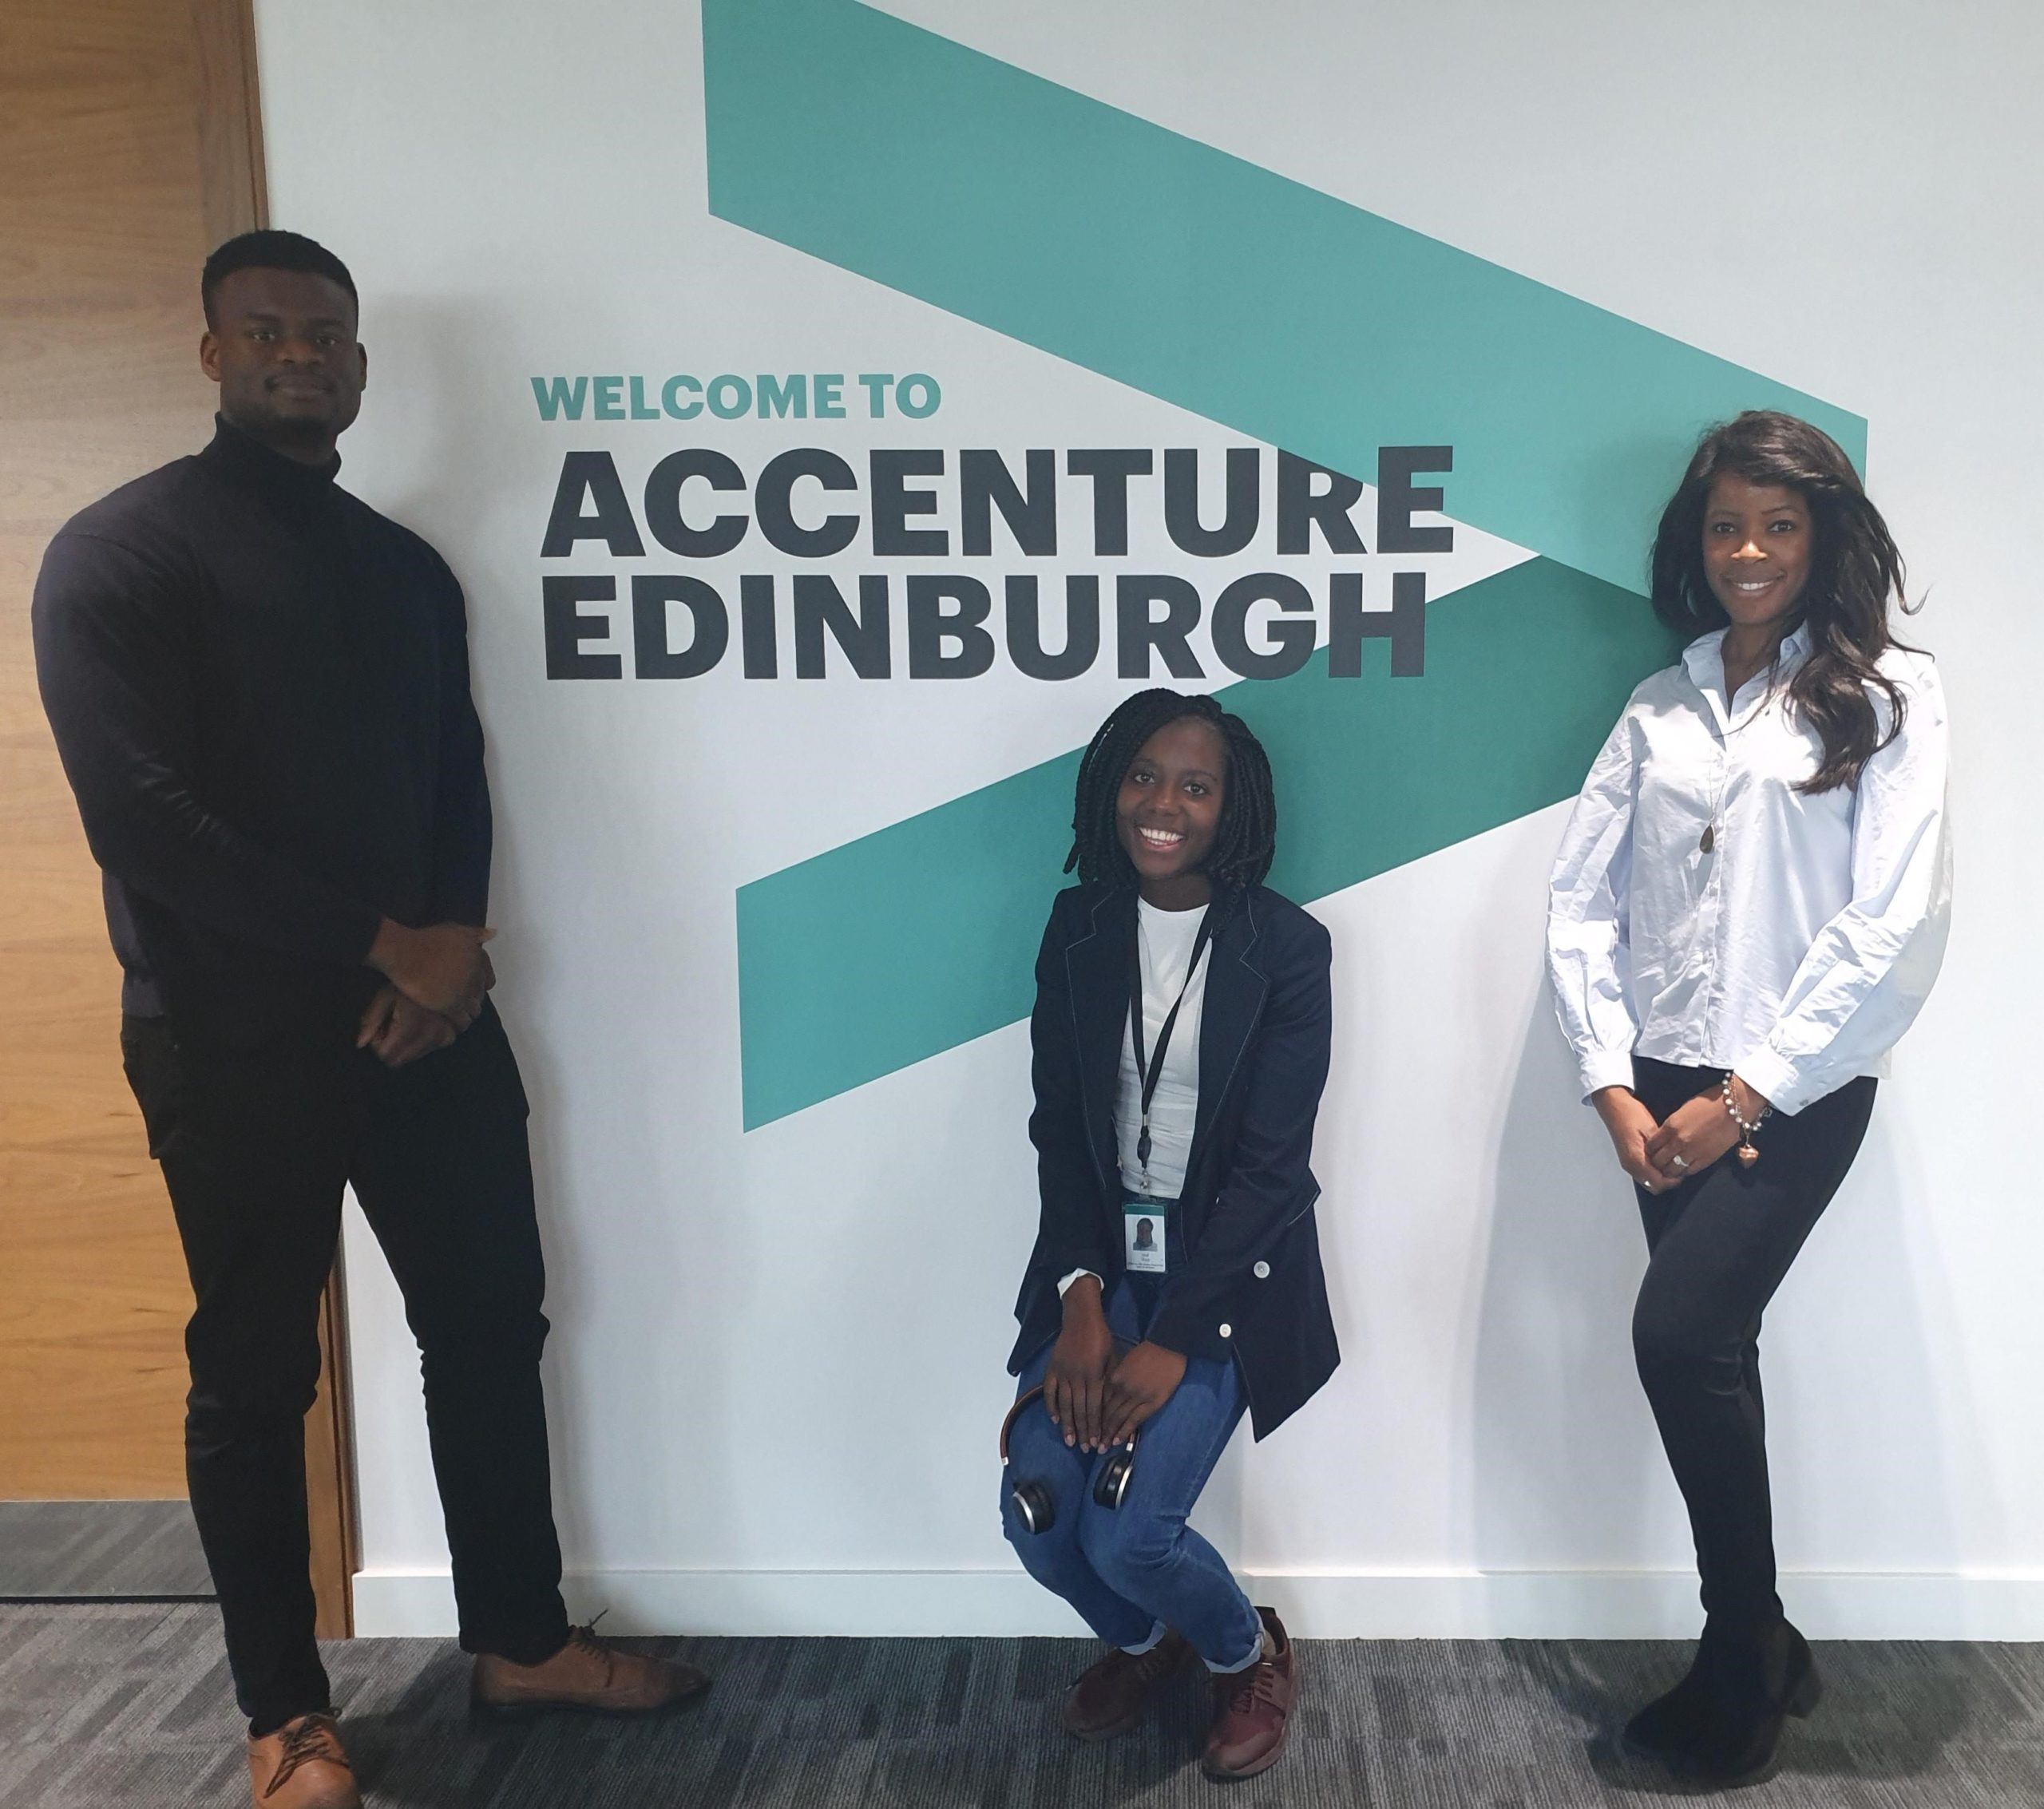 Janet and two colleagues standing in front of Accenture Edinburgh sign